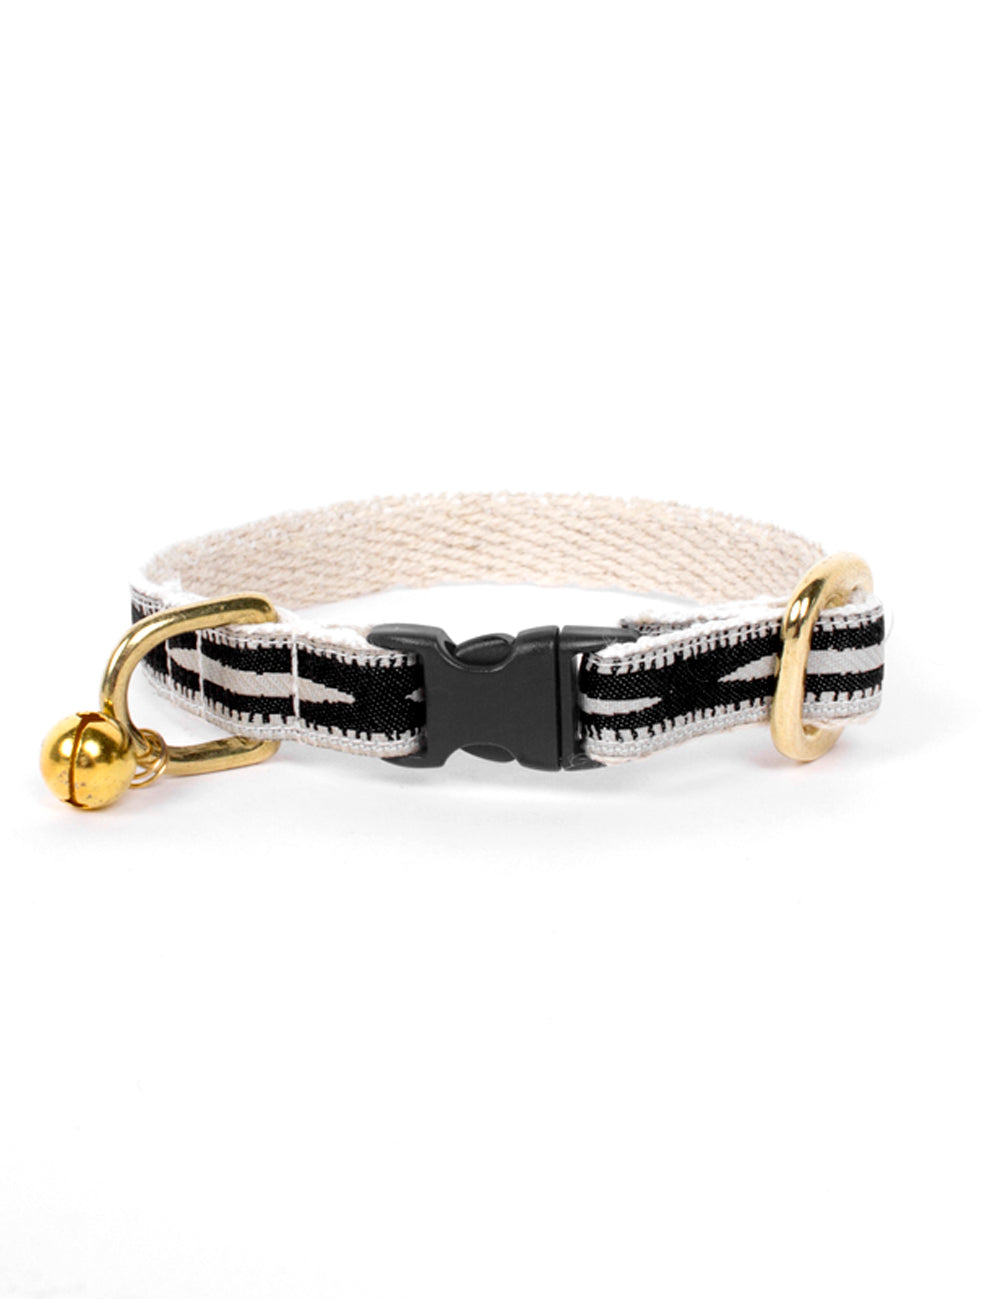 Braveheart Cat Collar | Cream & Black